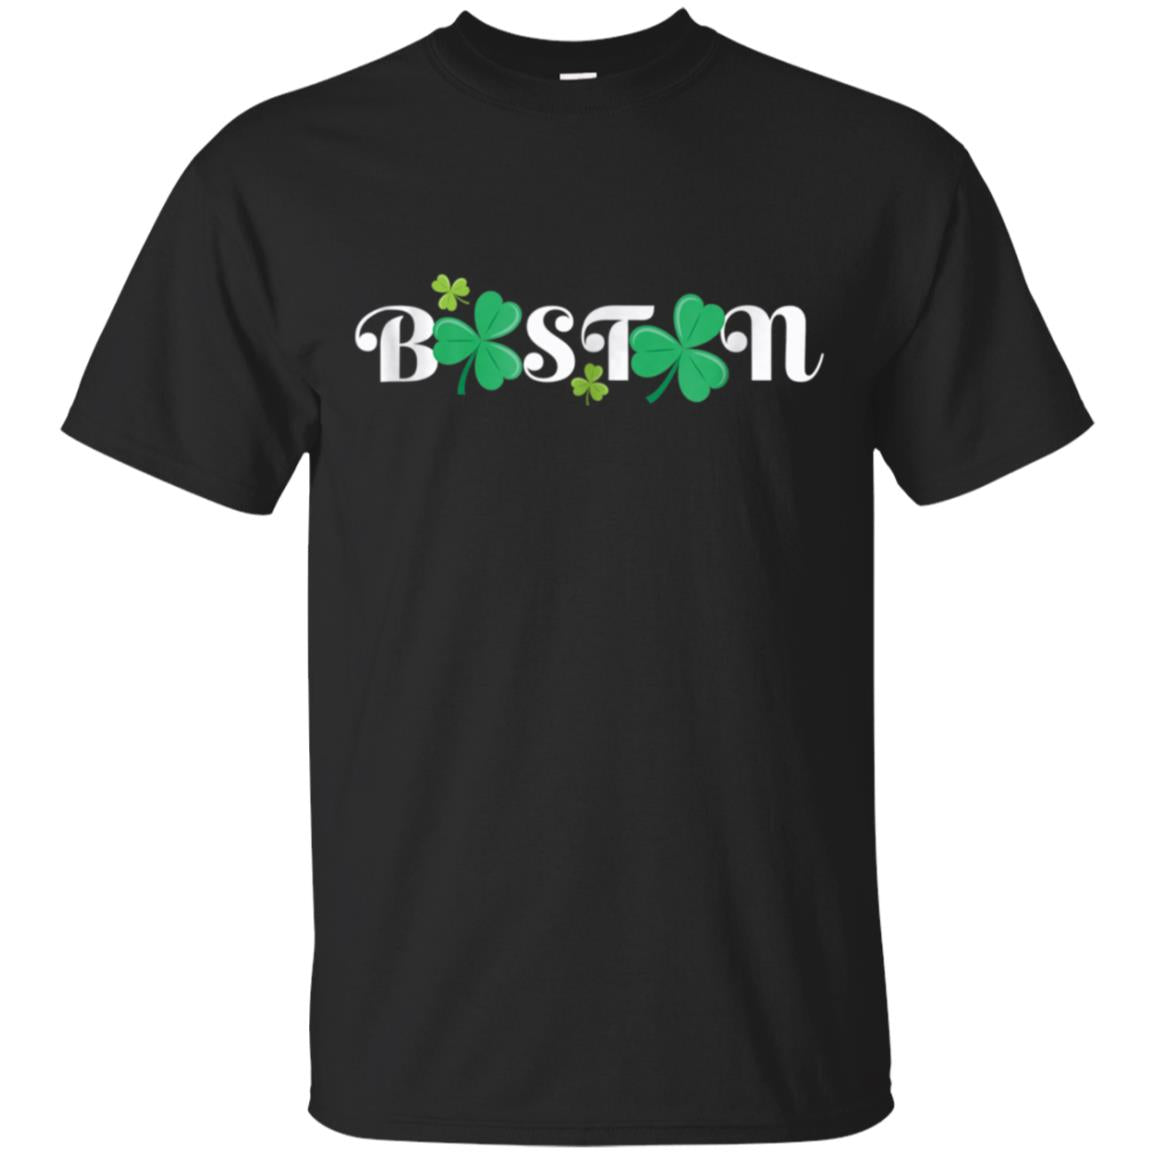 Boston T-shirt with Shamrock St Paddy Day T Shirt 99promocode